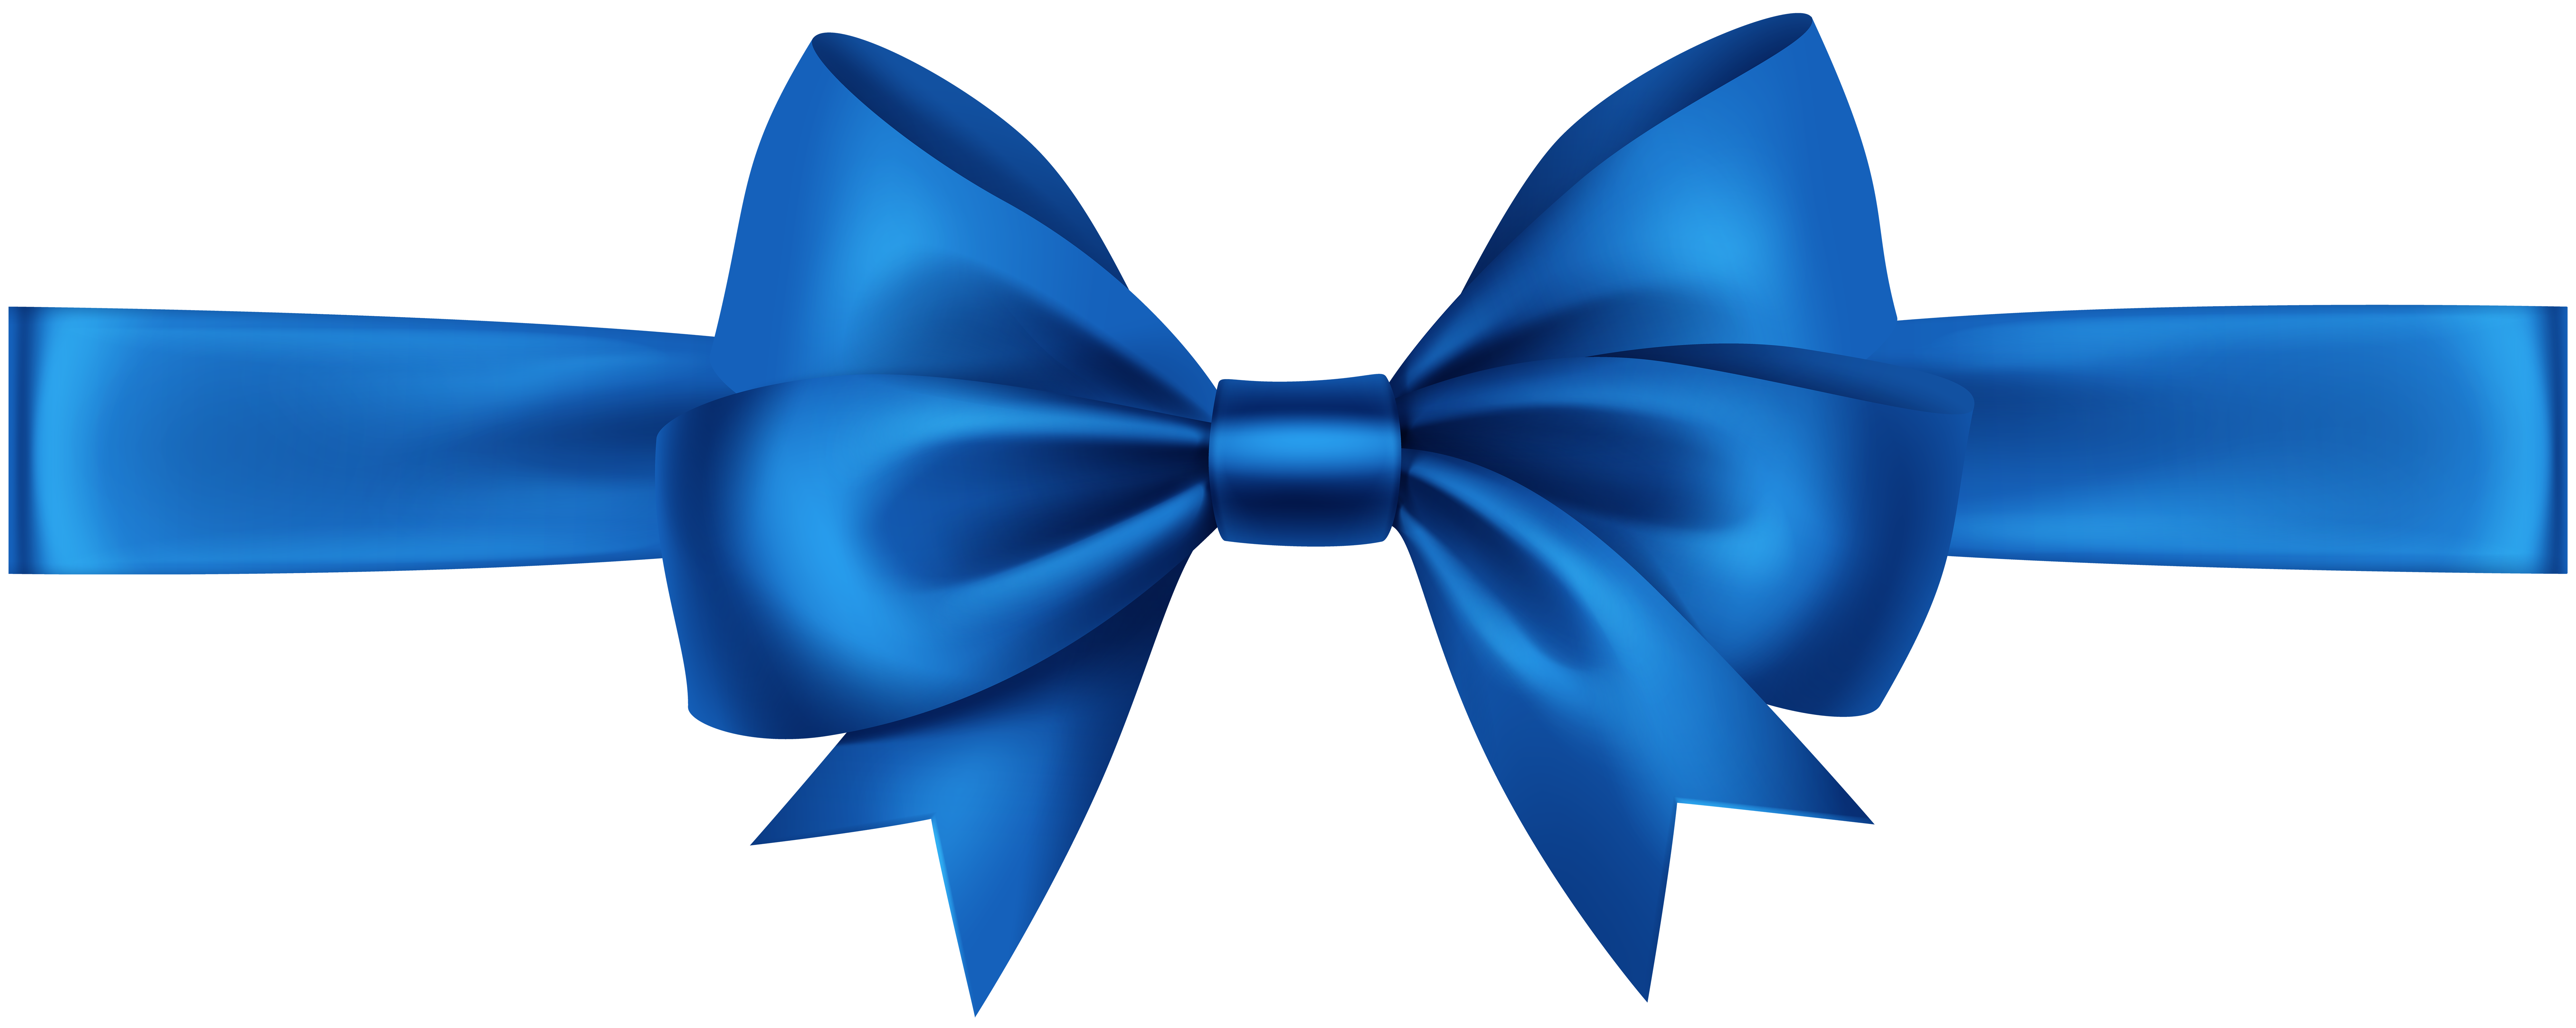 Blue ribbon png. With bow transparent clip